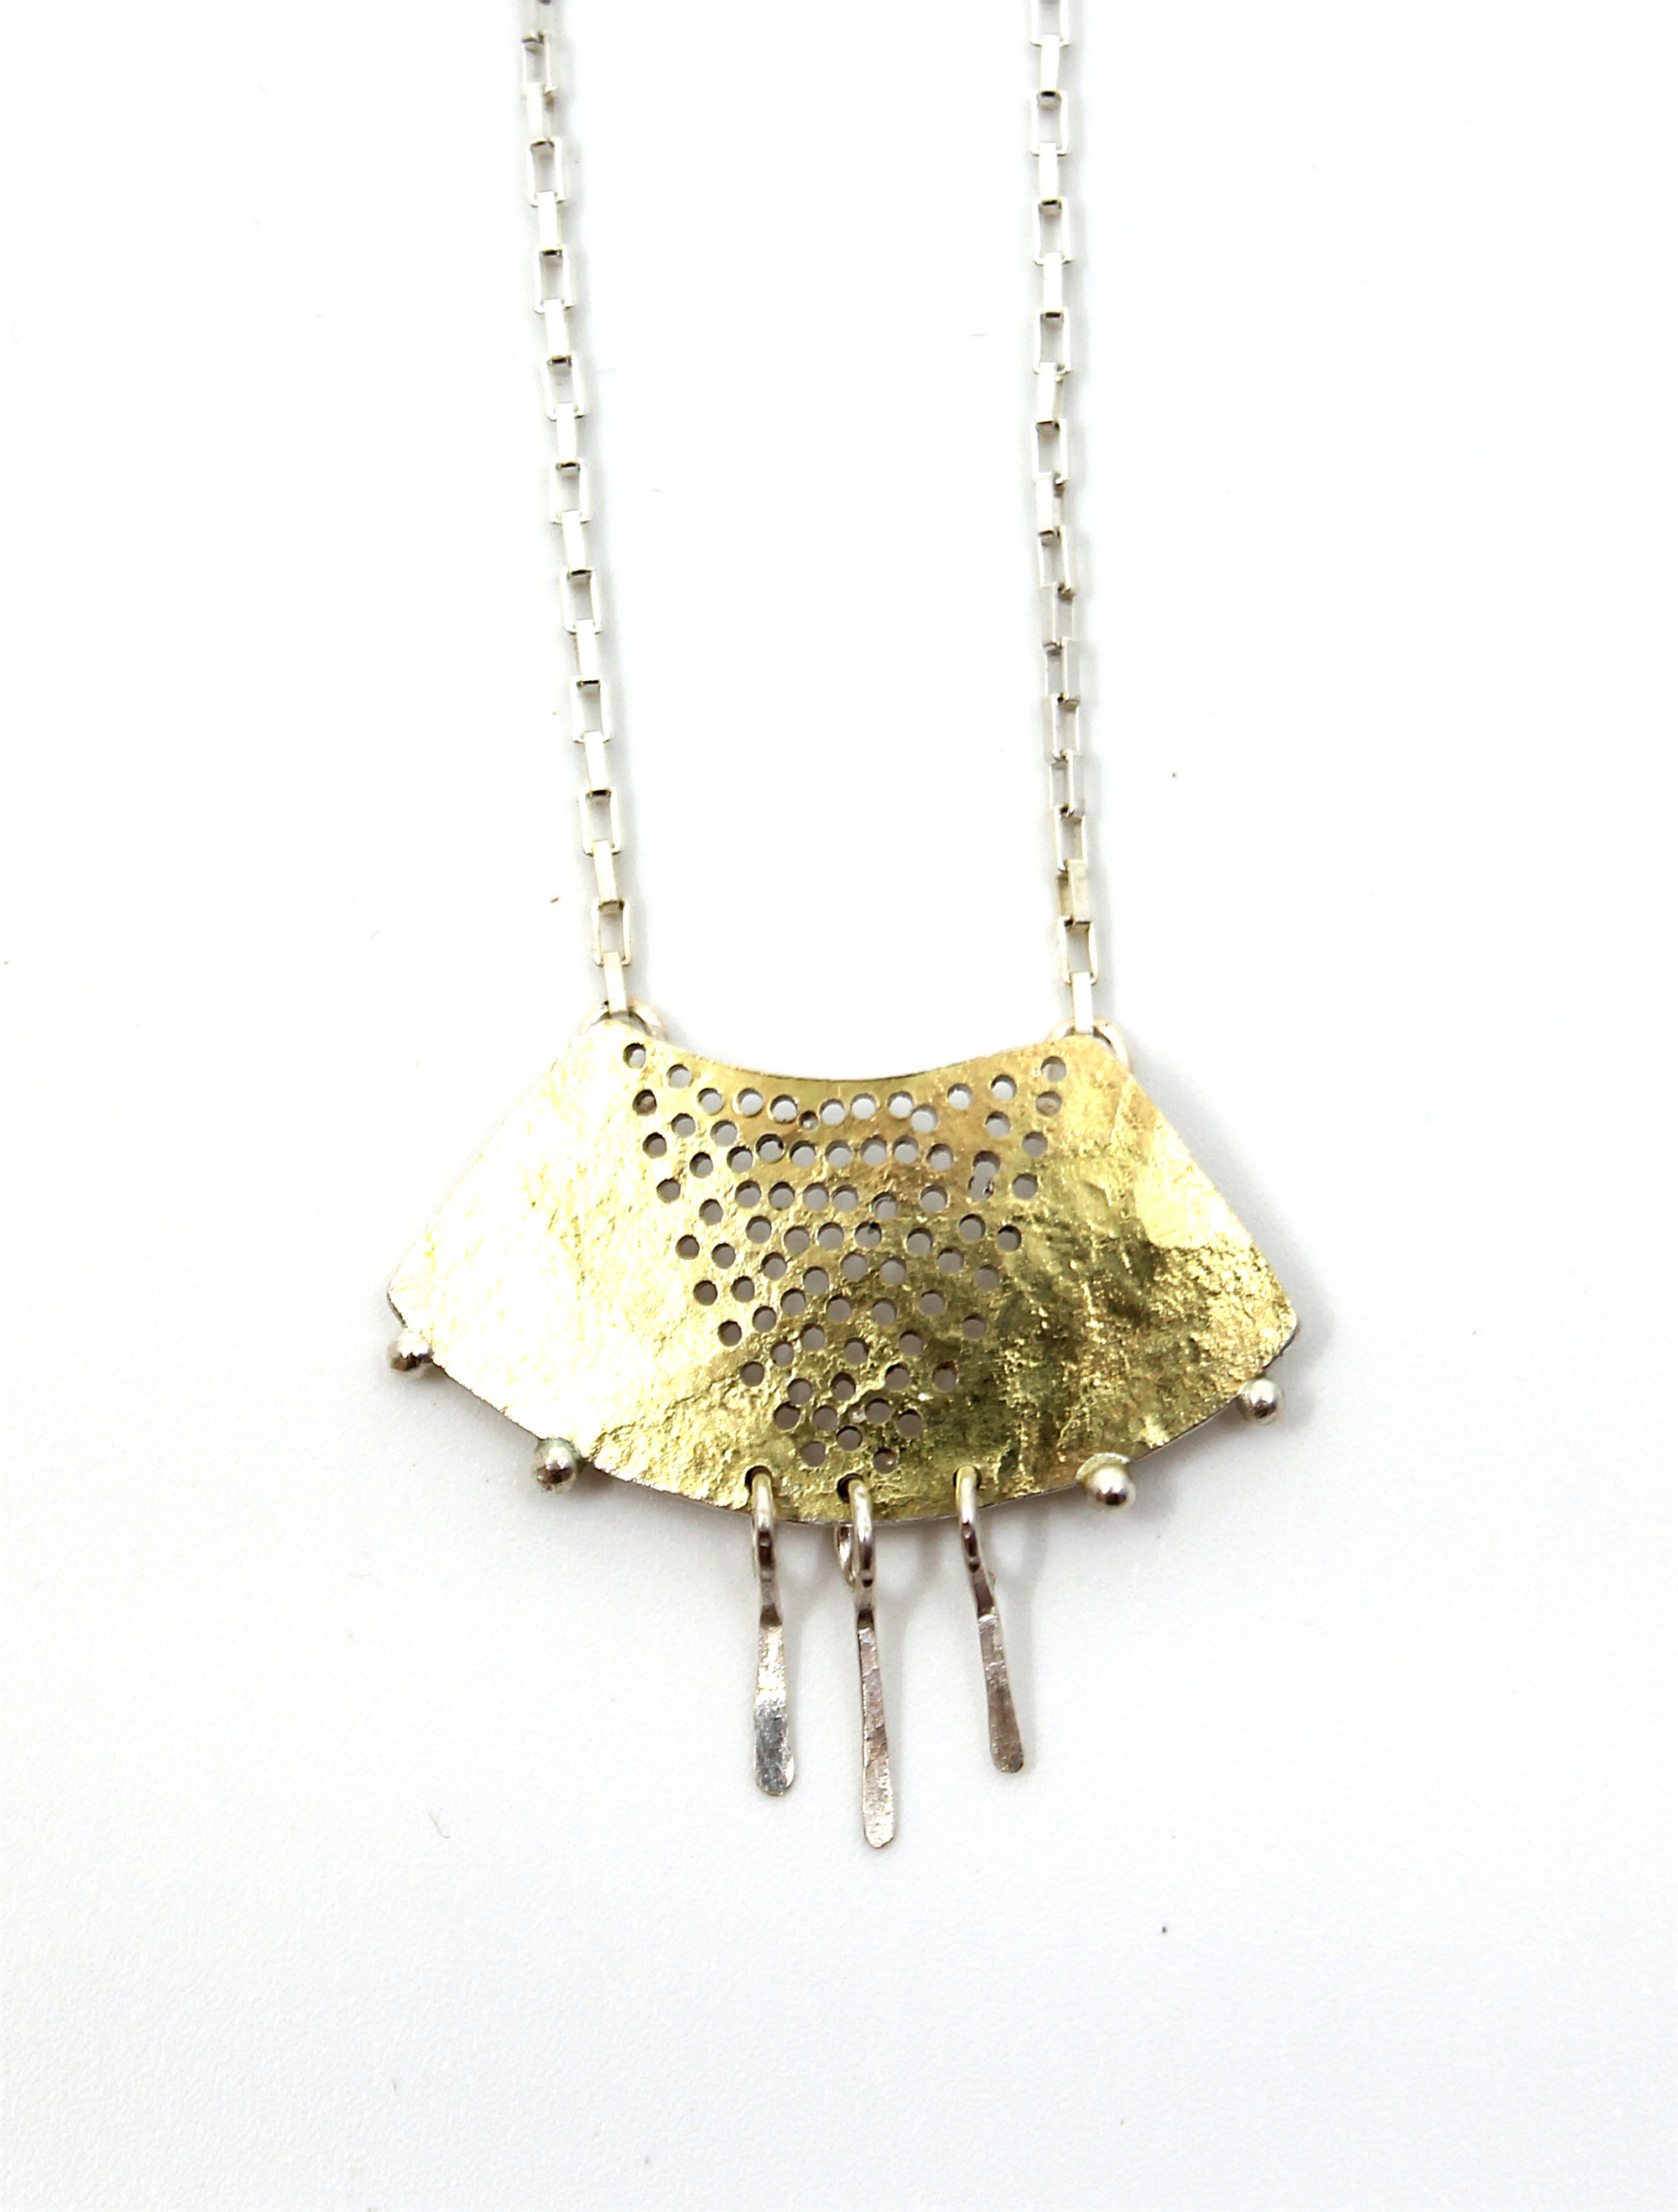 Gibbous Necklace by Leia Zumbro